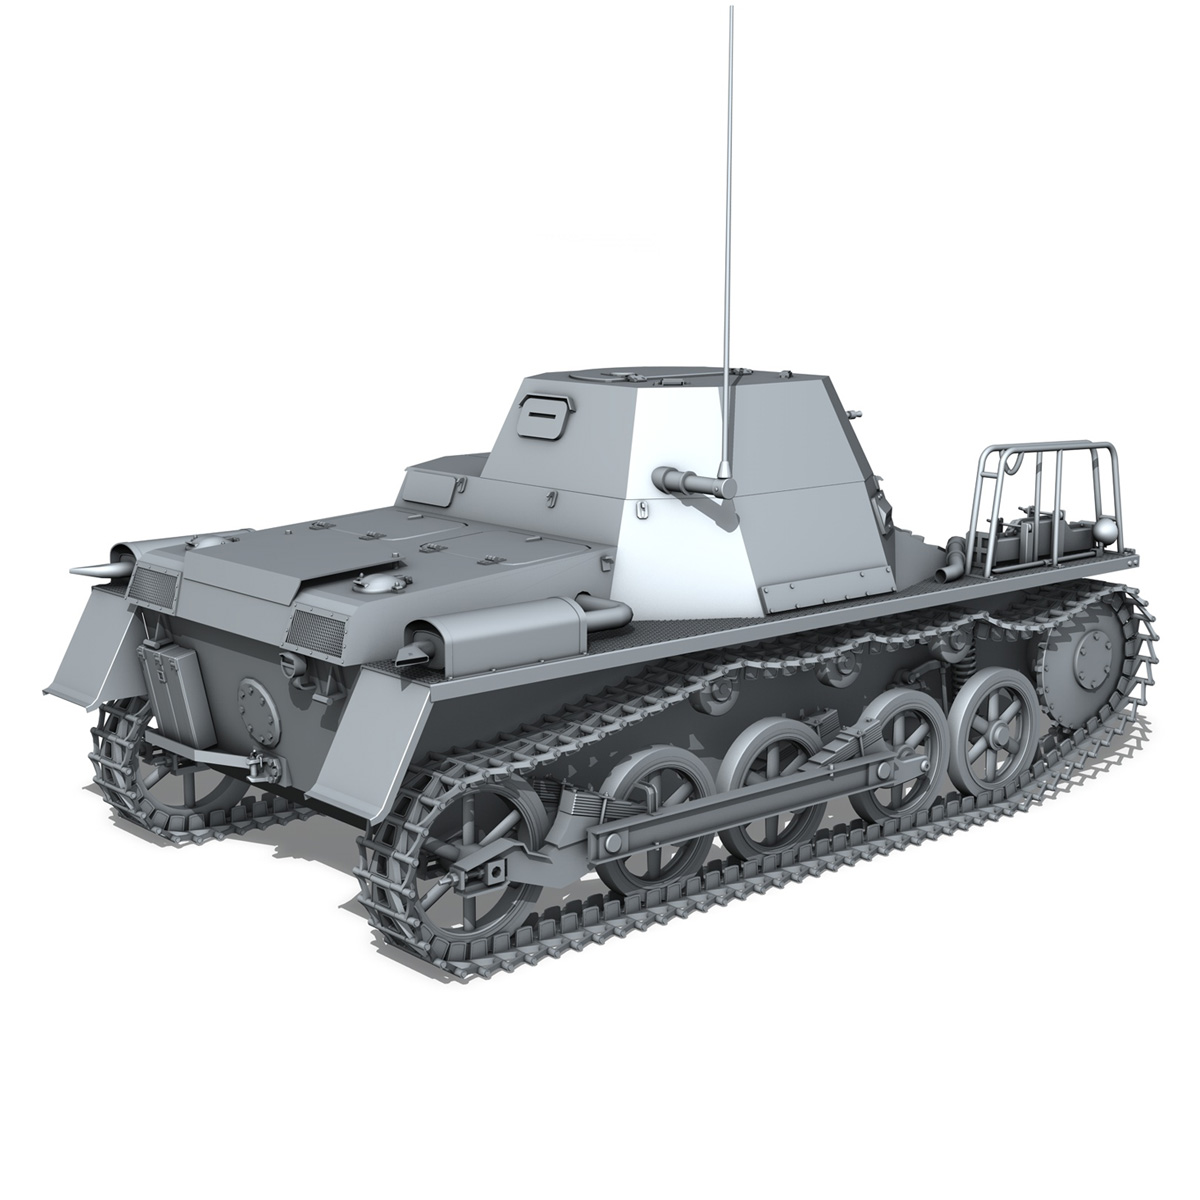 panzerkampfwagen 1 – panzer 1 collection 3d model 3ds fbx c4d lwo obj 189341